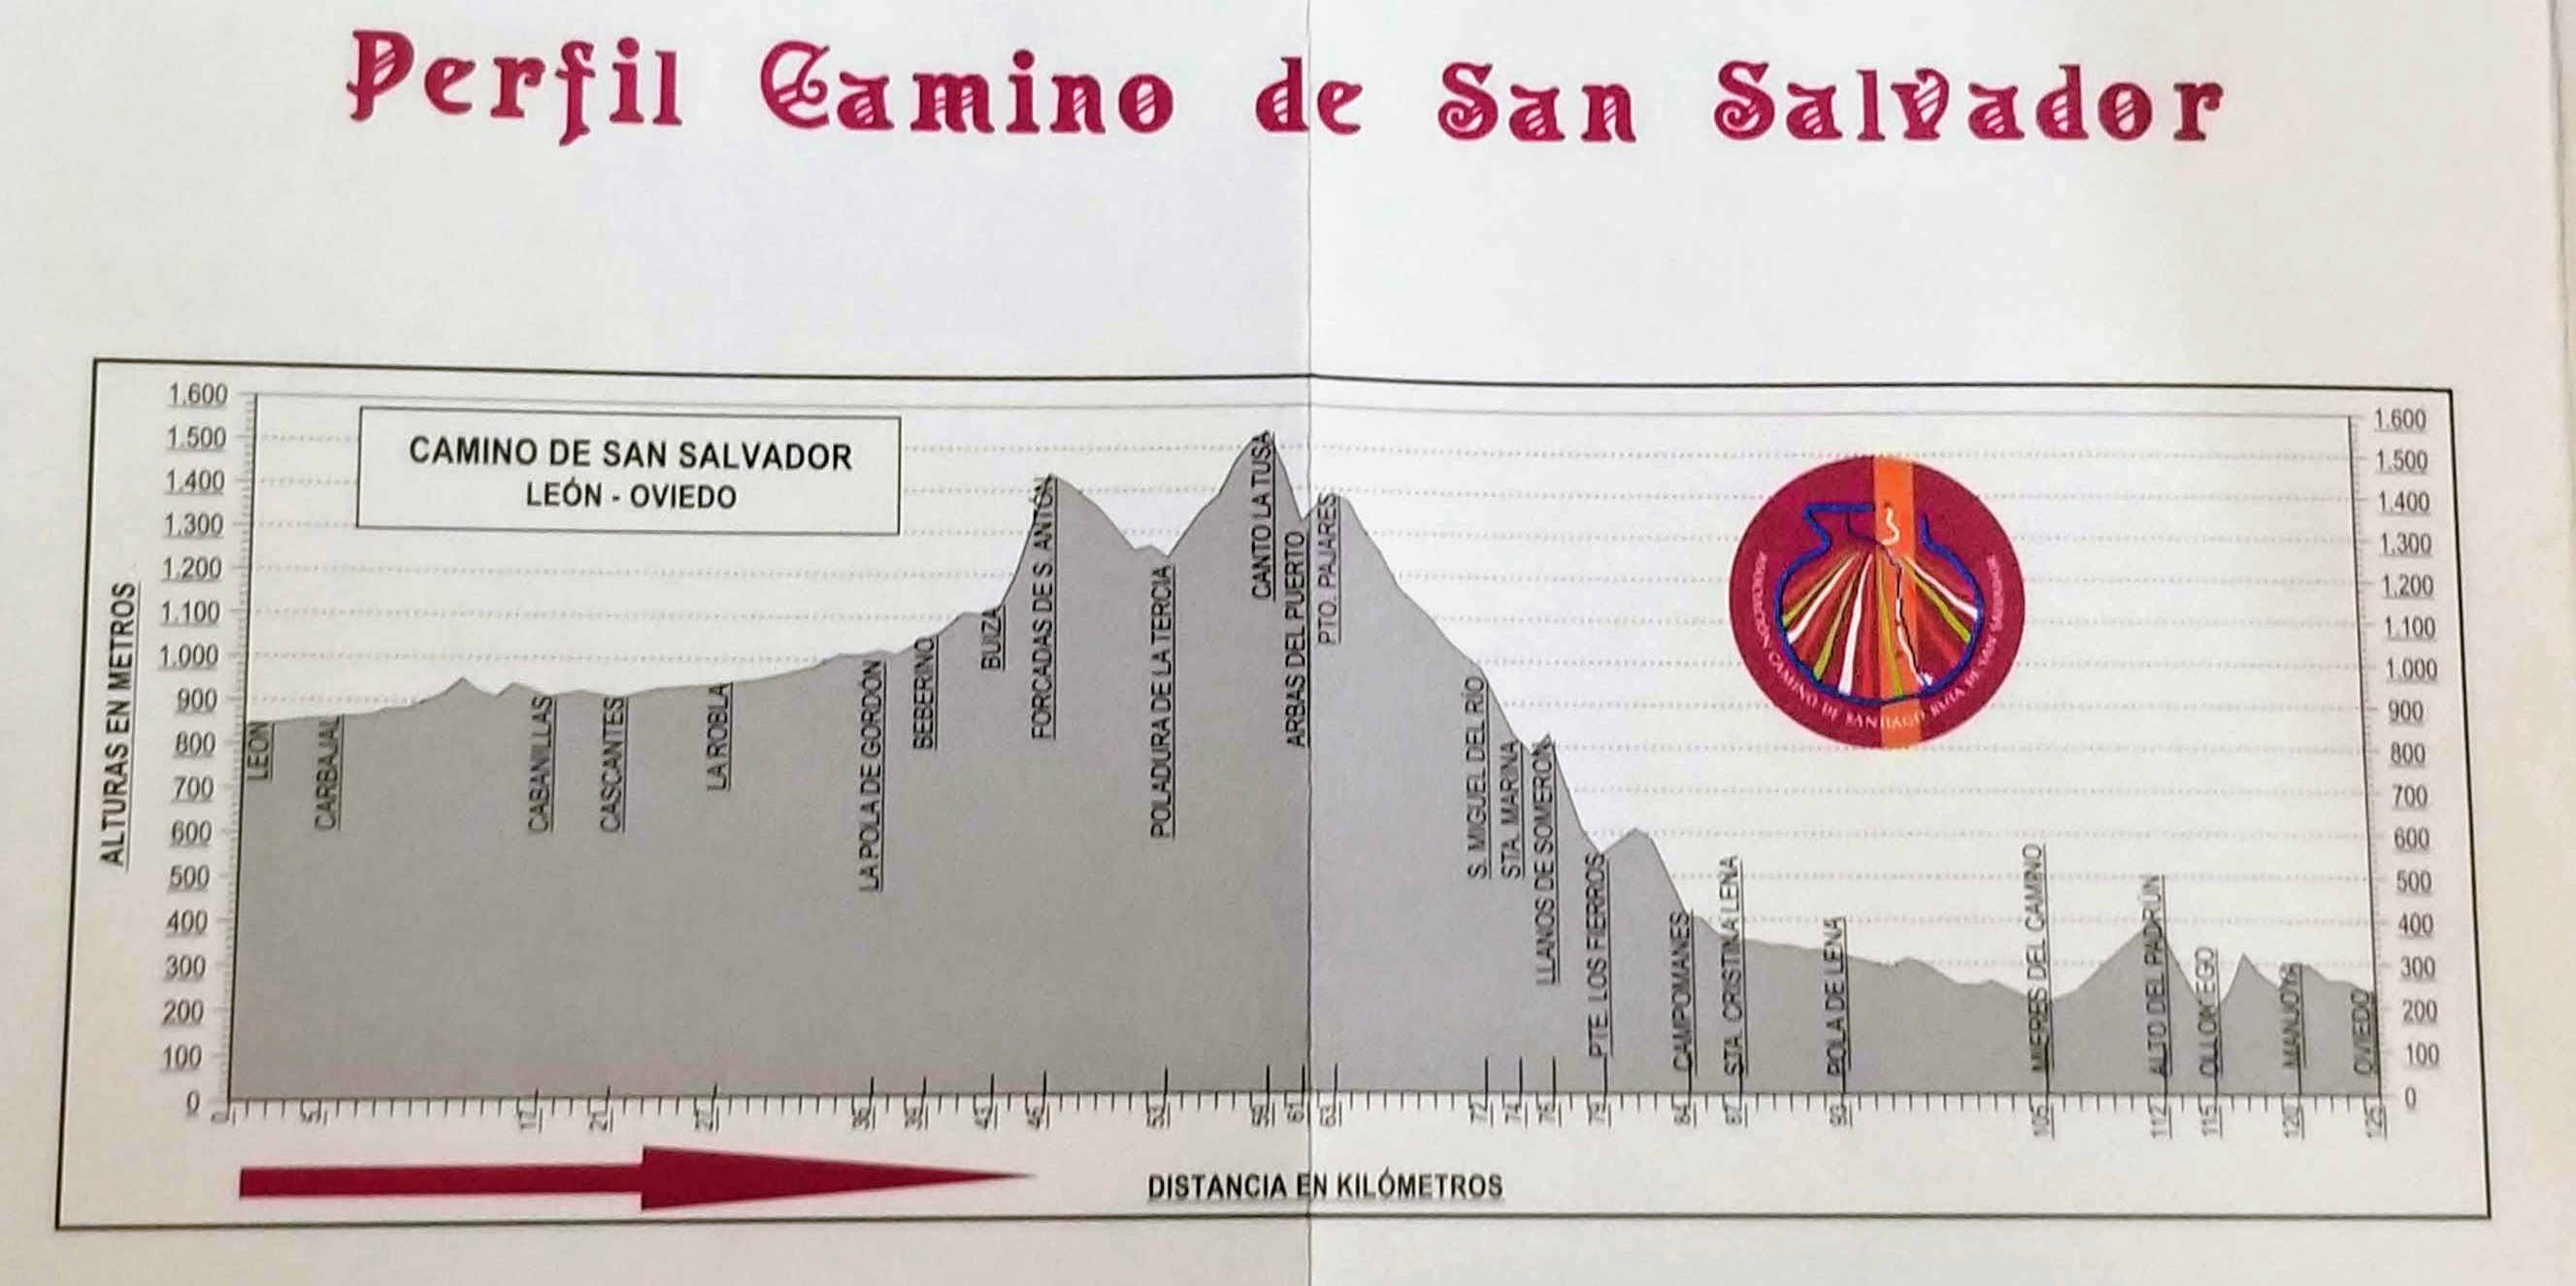 Elevation Profile Camino San Salvador Entire Route